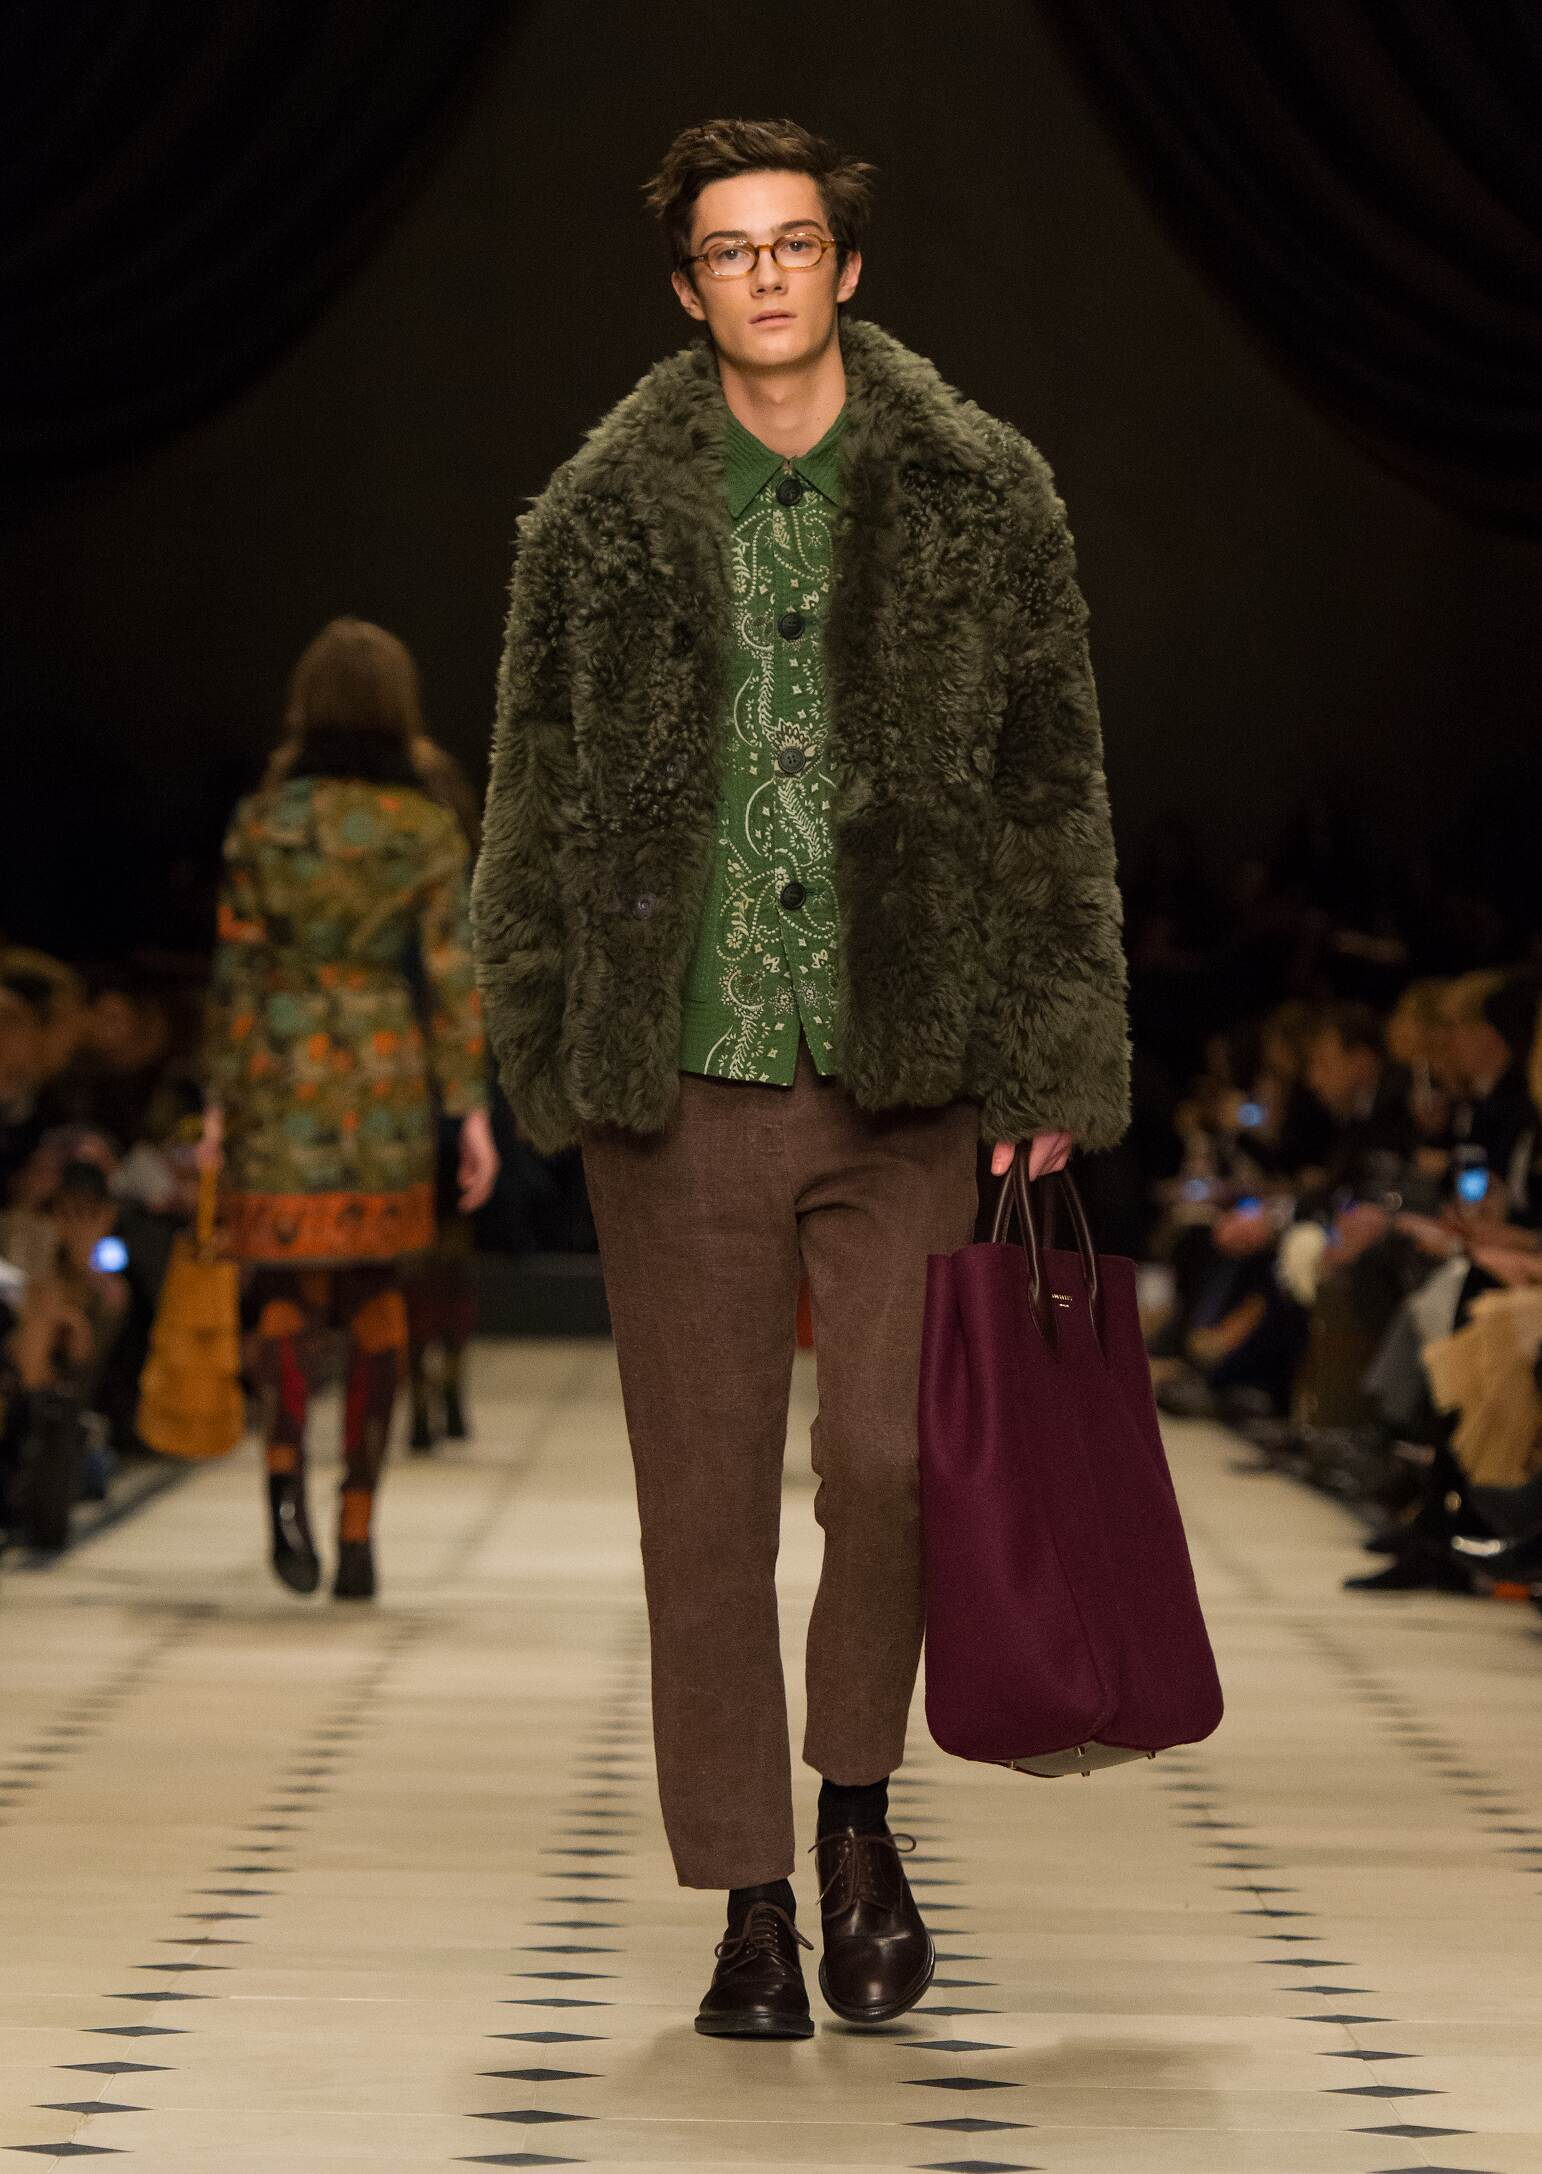 Fashion Man Model Burberry Prorsum Collection Catwalk